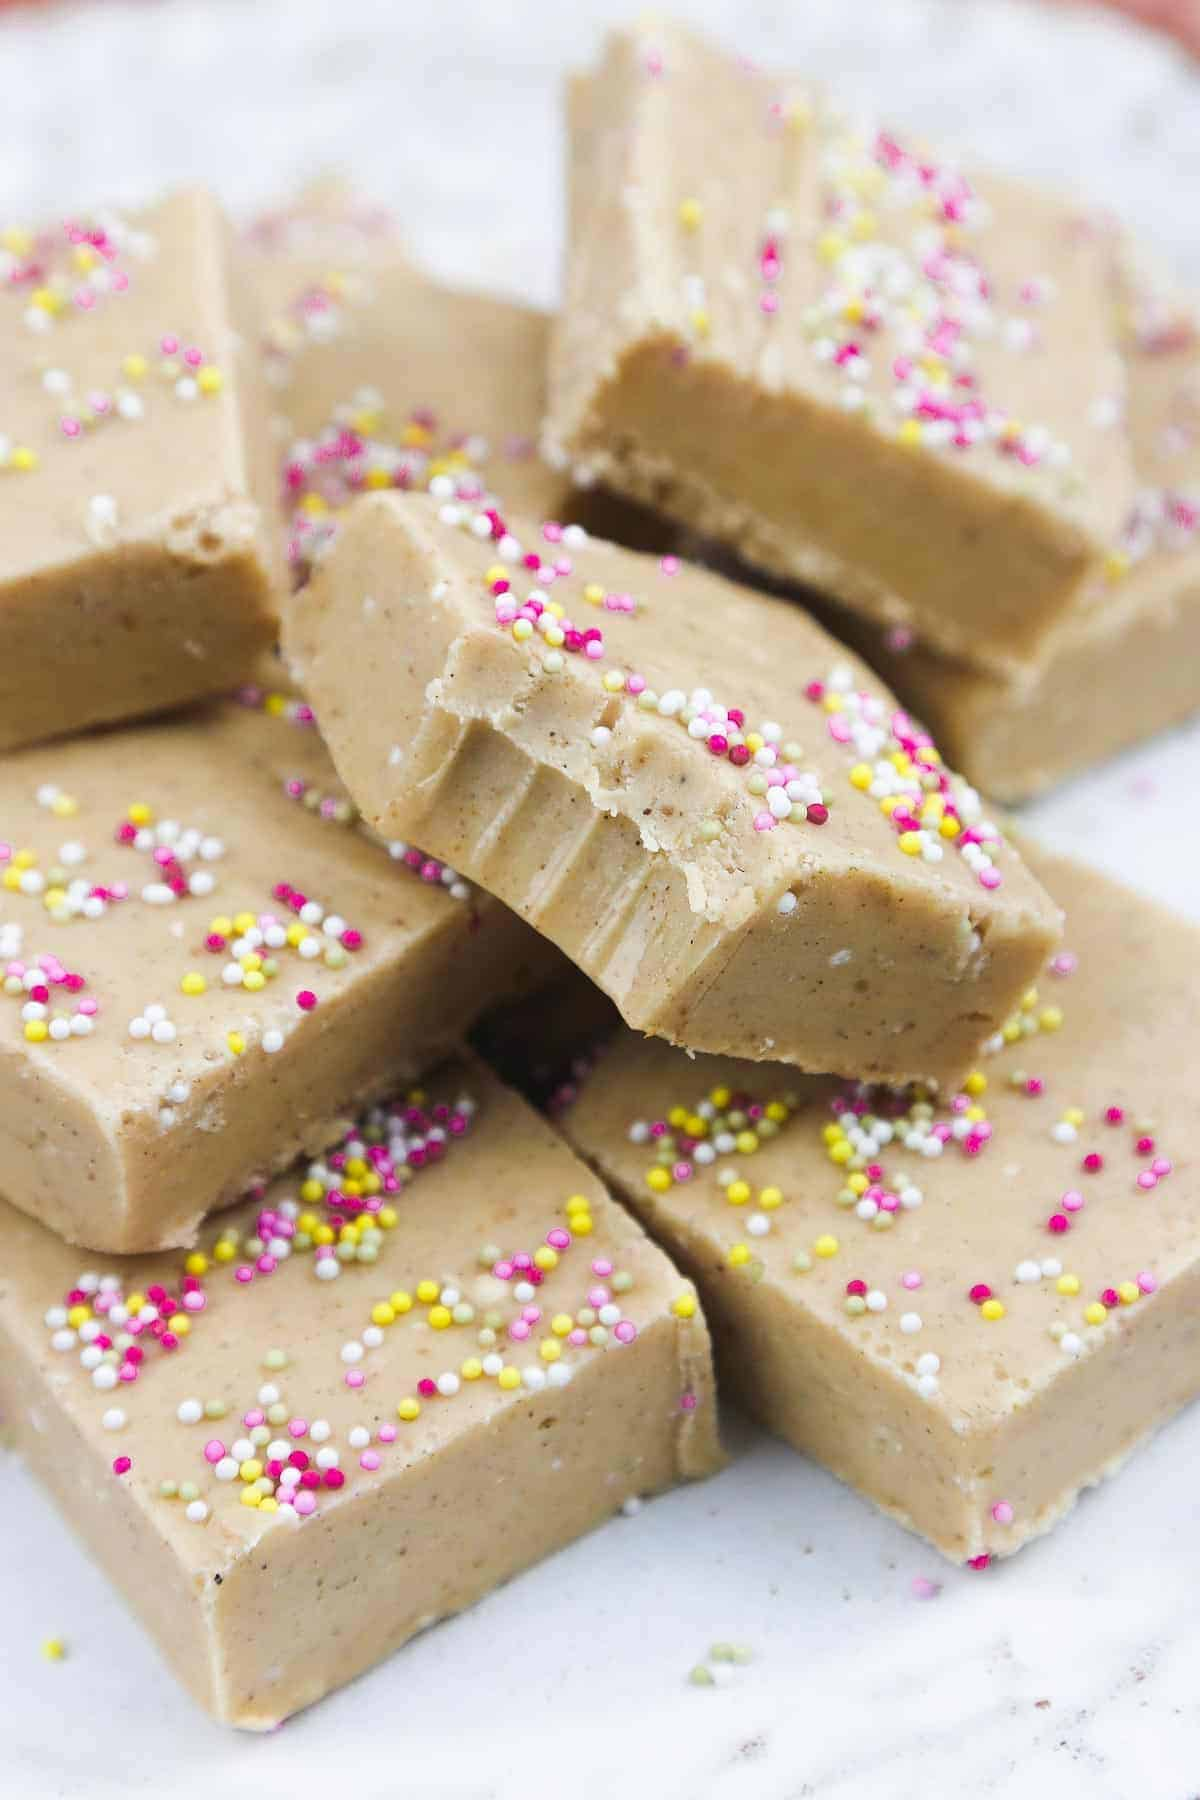 Condensed milk fudge squares piled on each other